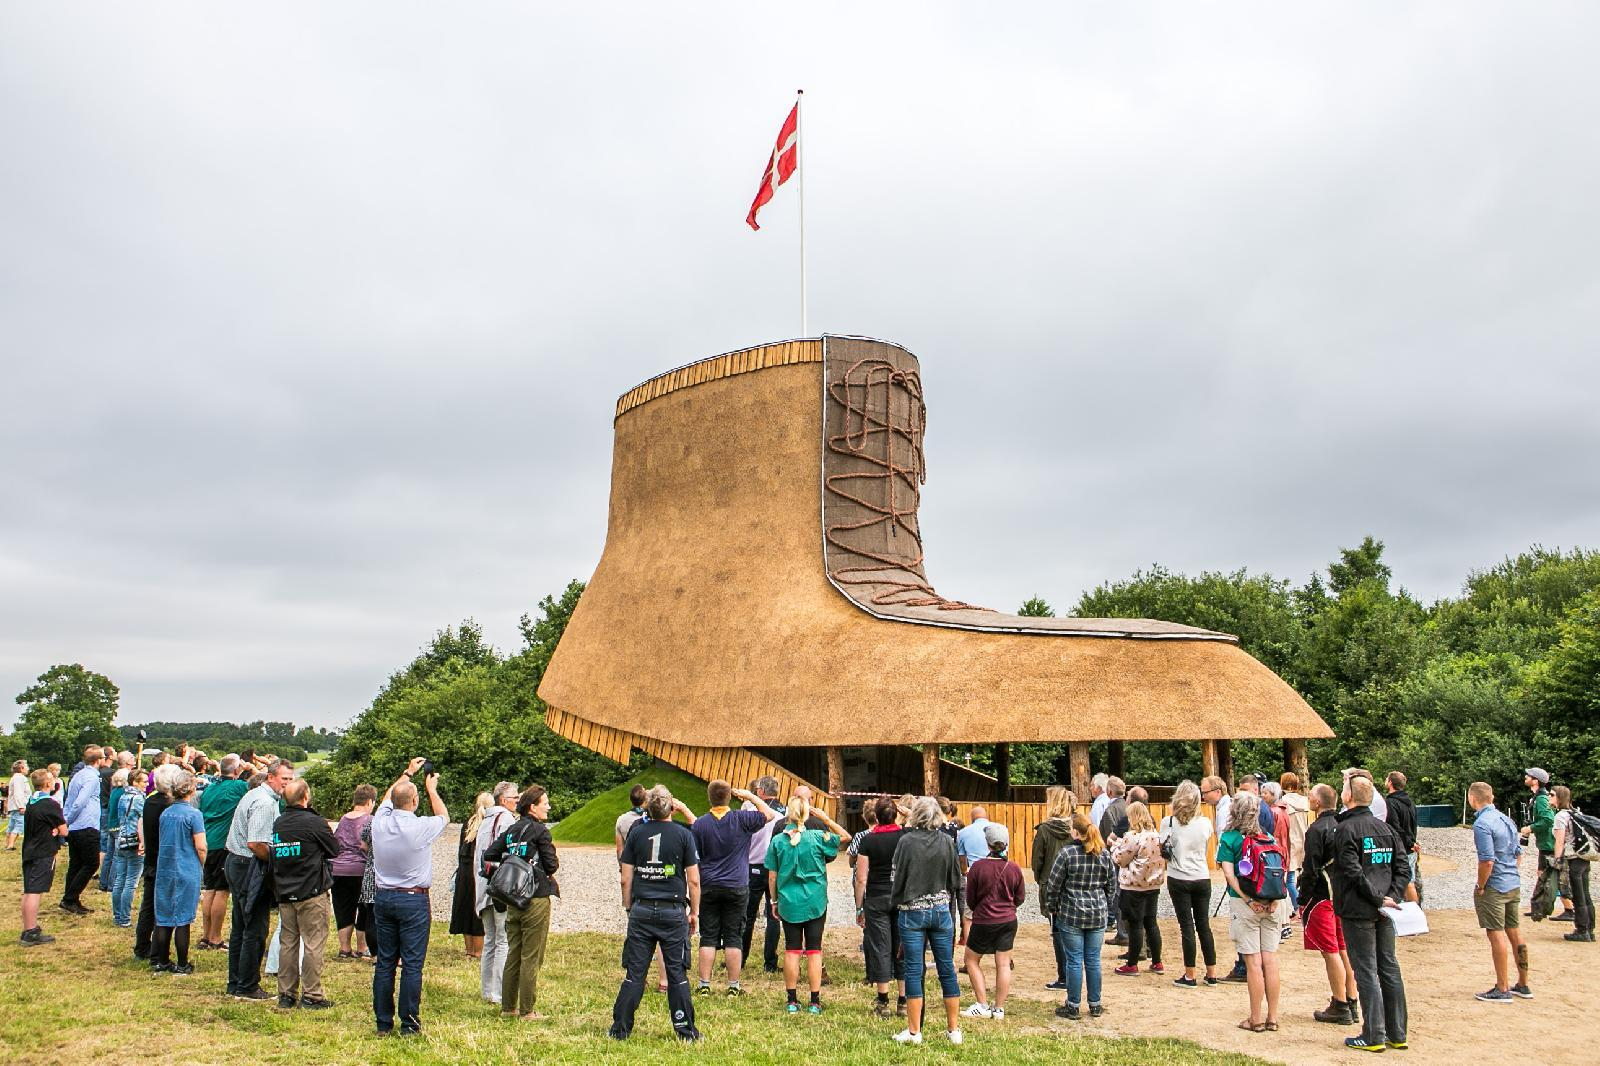 Many people attended the opening ceremony of Støvlen, the jamboree's landmark. The landmark is build by volunteers from Solaris, a scout and guide group.